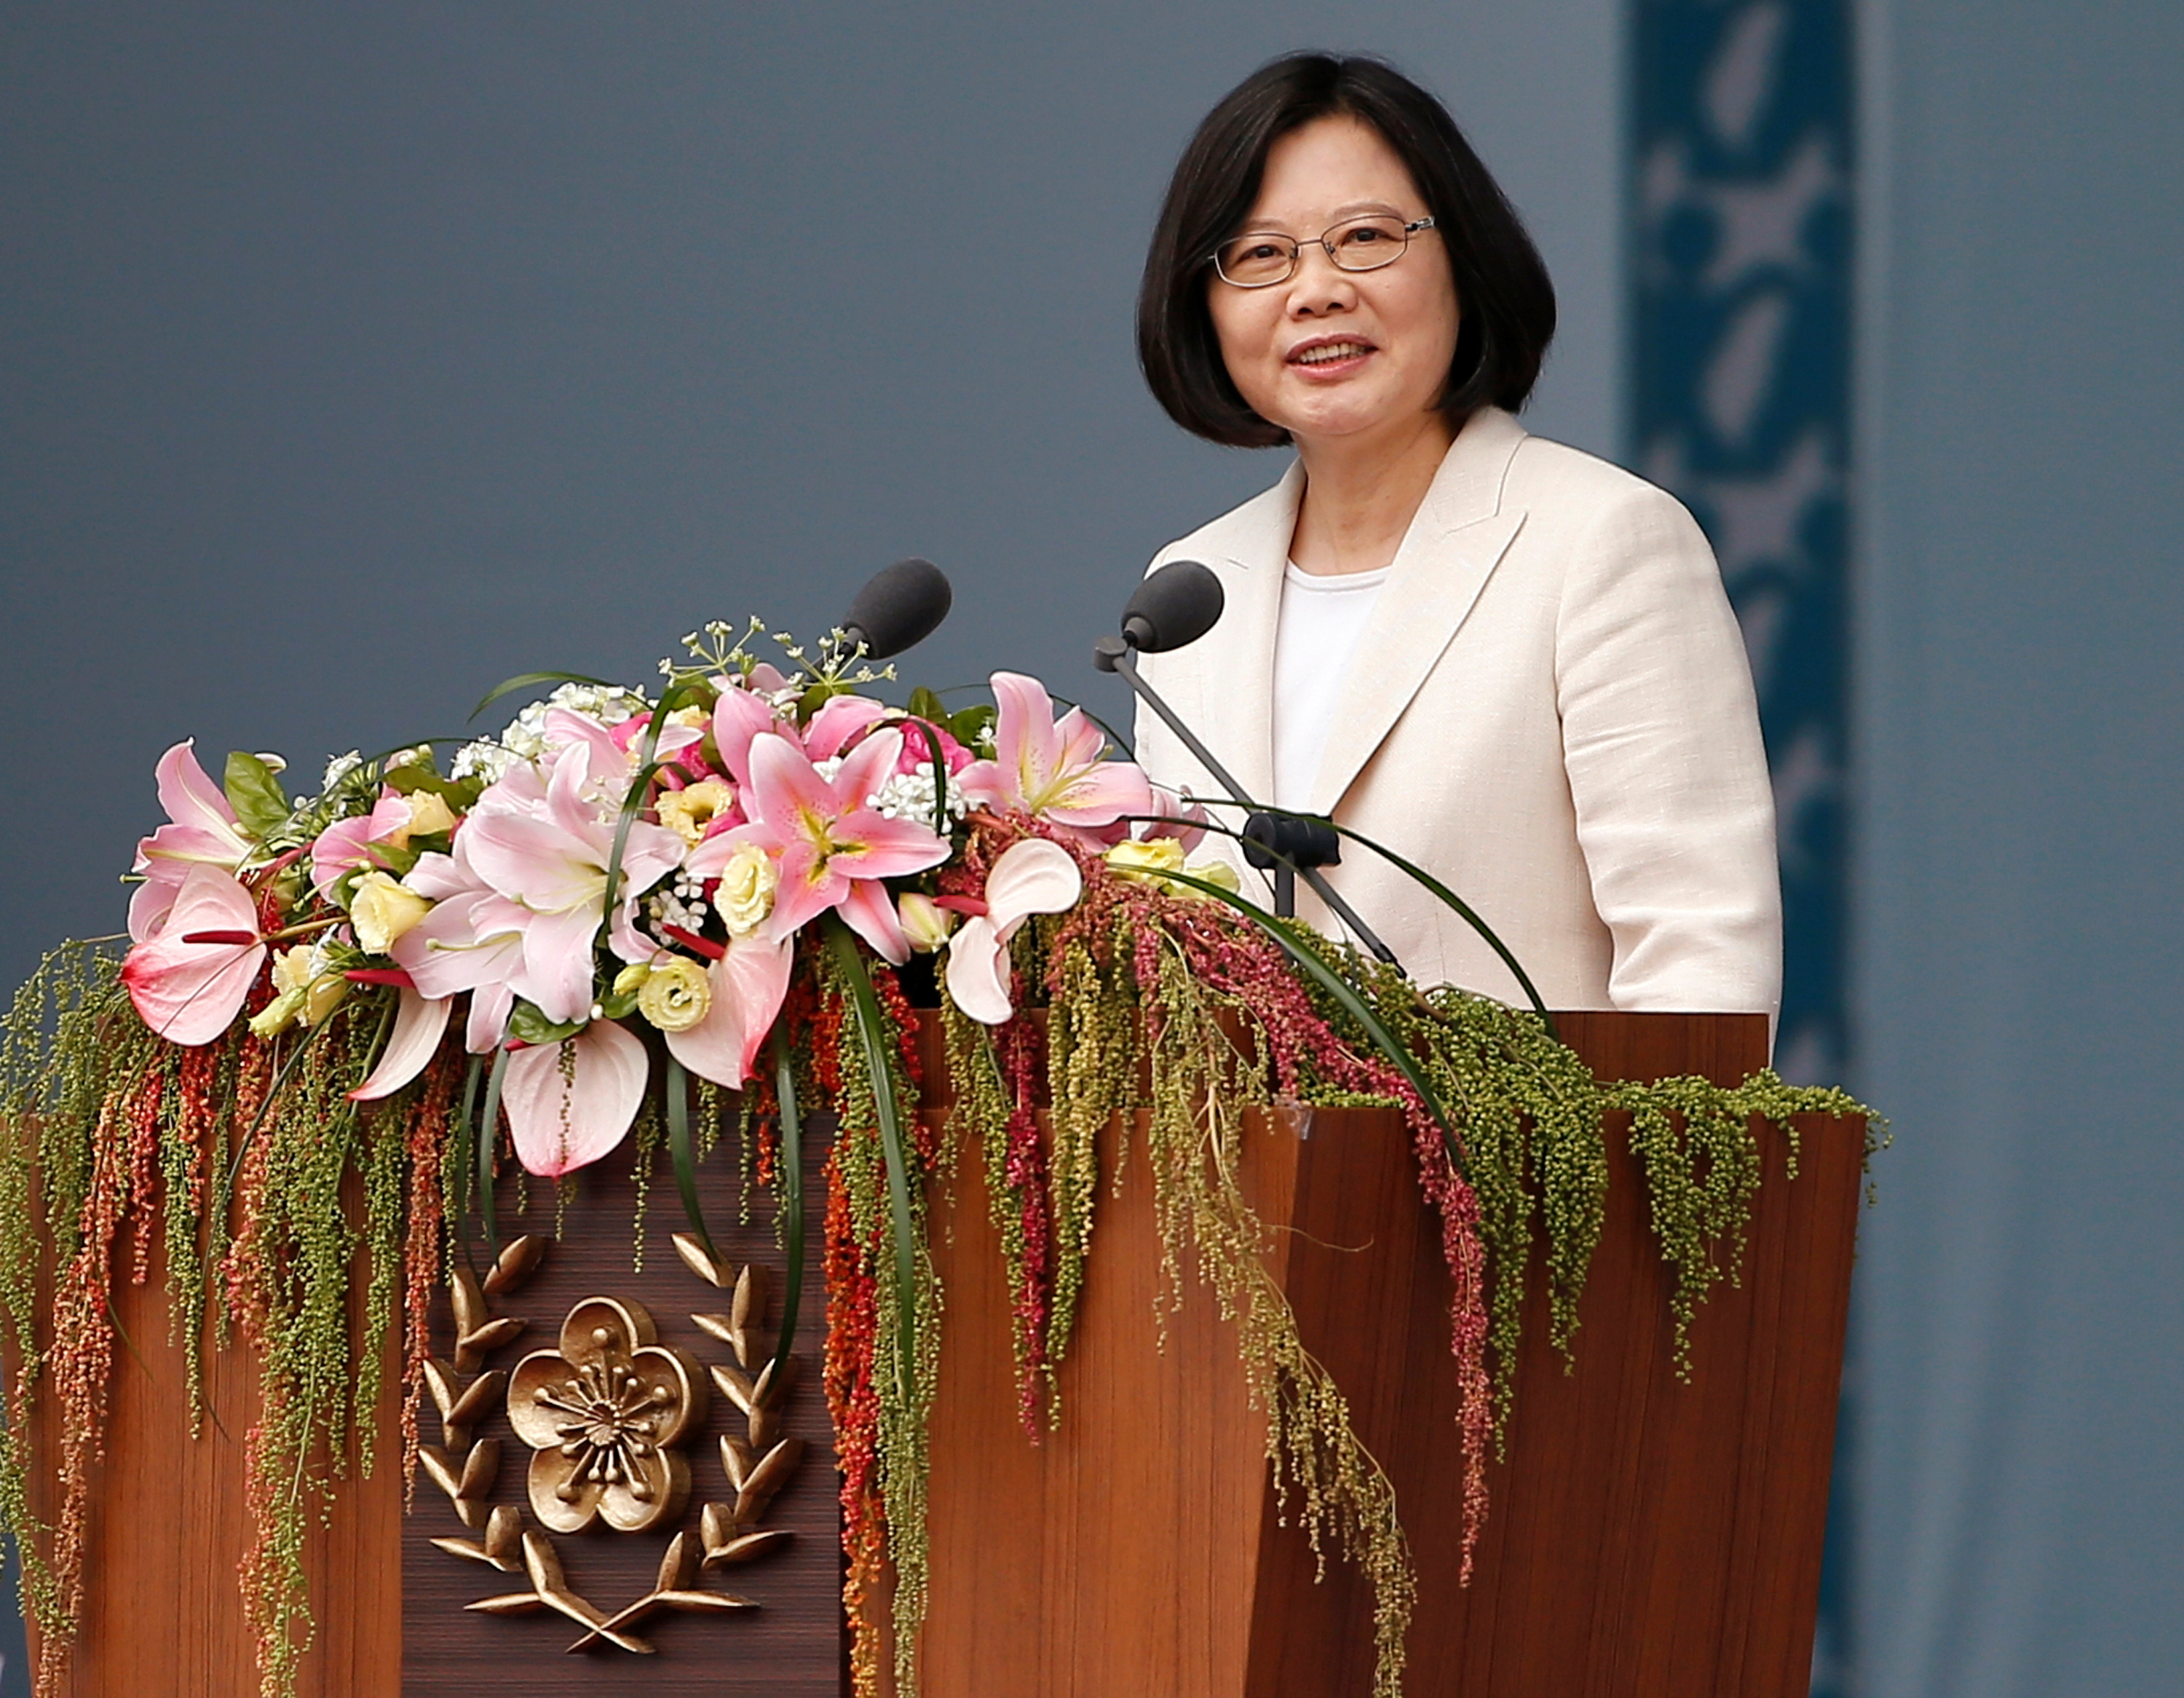 Taiwan's President Tsai Ing-wen gives a speech during her inauguration ceremony in Taipei on May 20, 2016